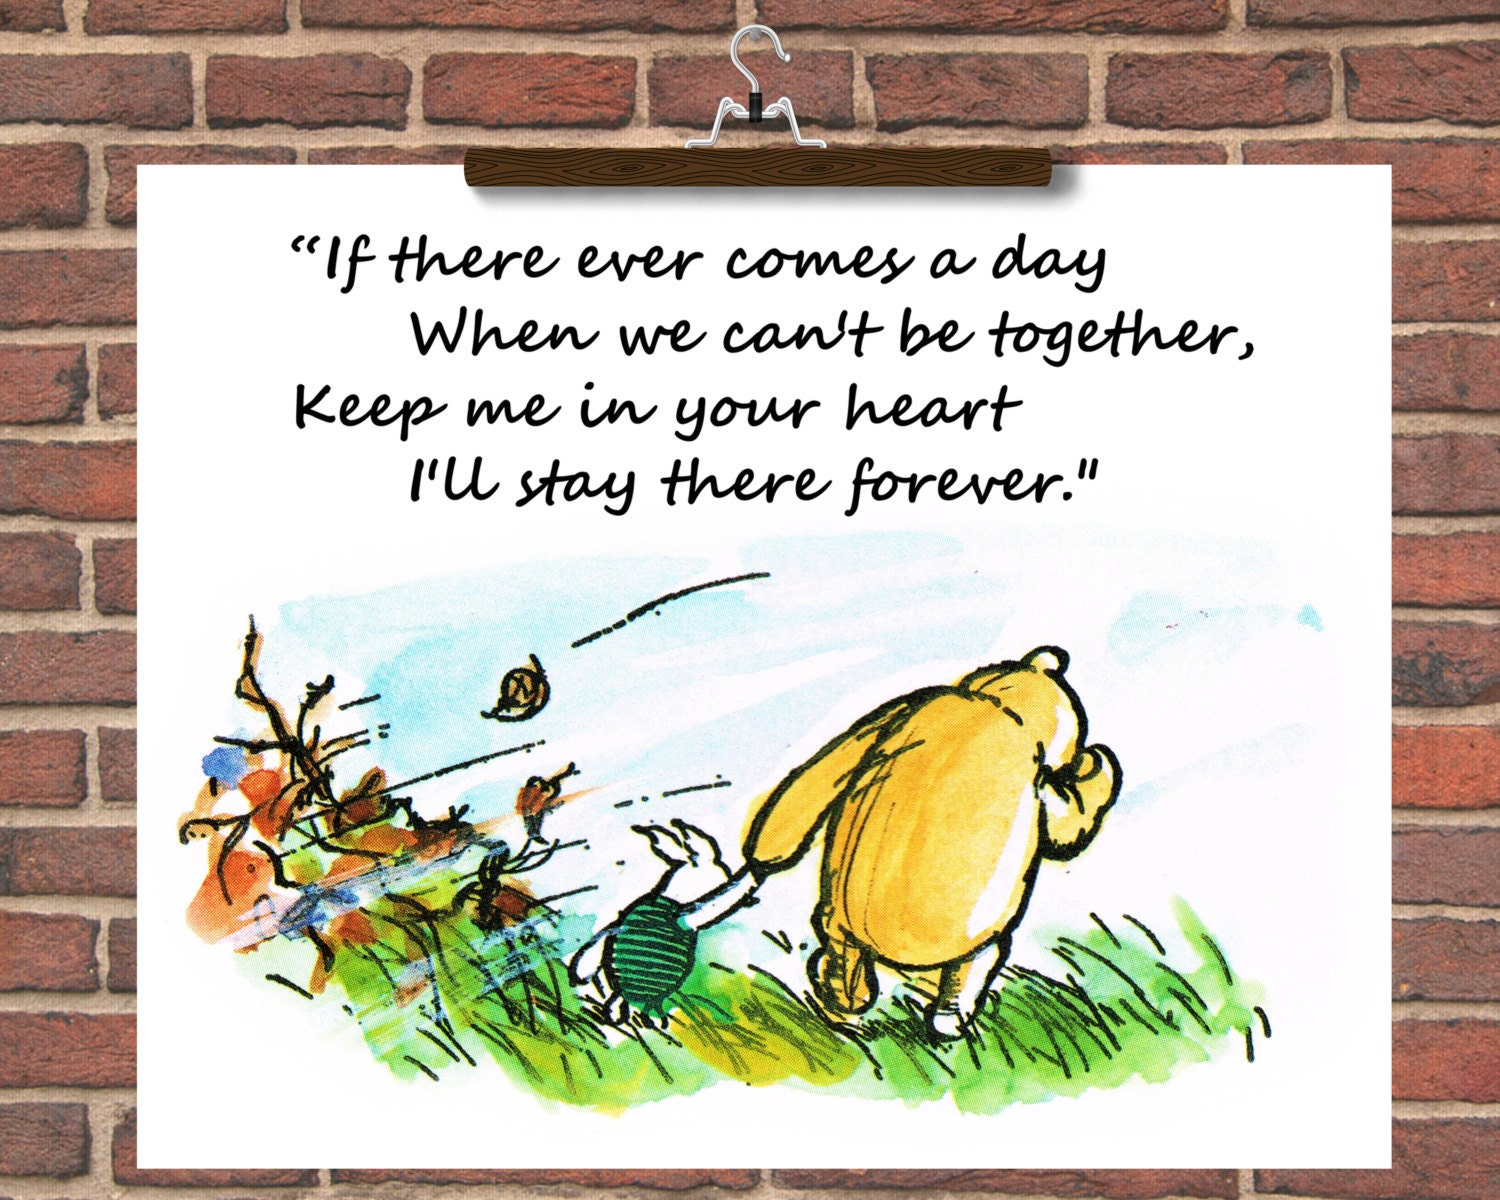 Winnie The Pooh Quotes: Winnie The Pooh Quotes 'If There Ever Comes A Day When We